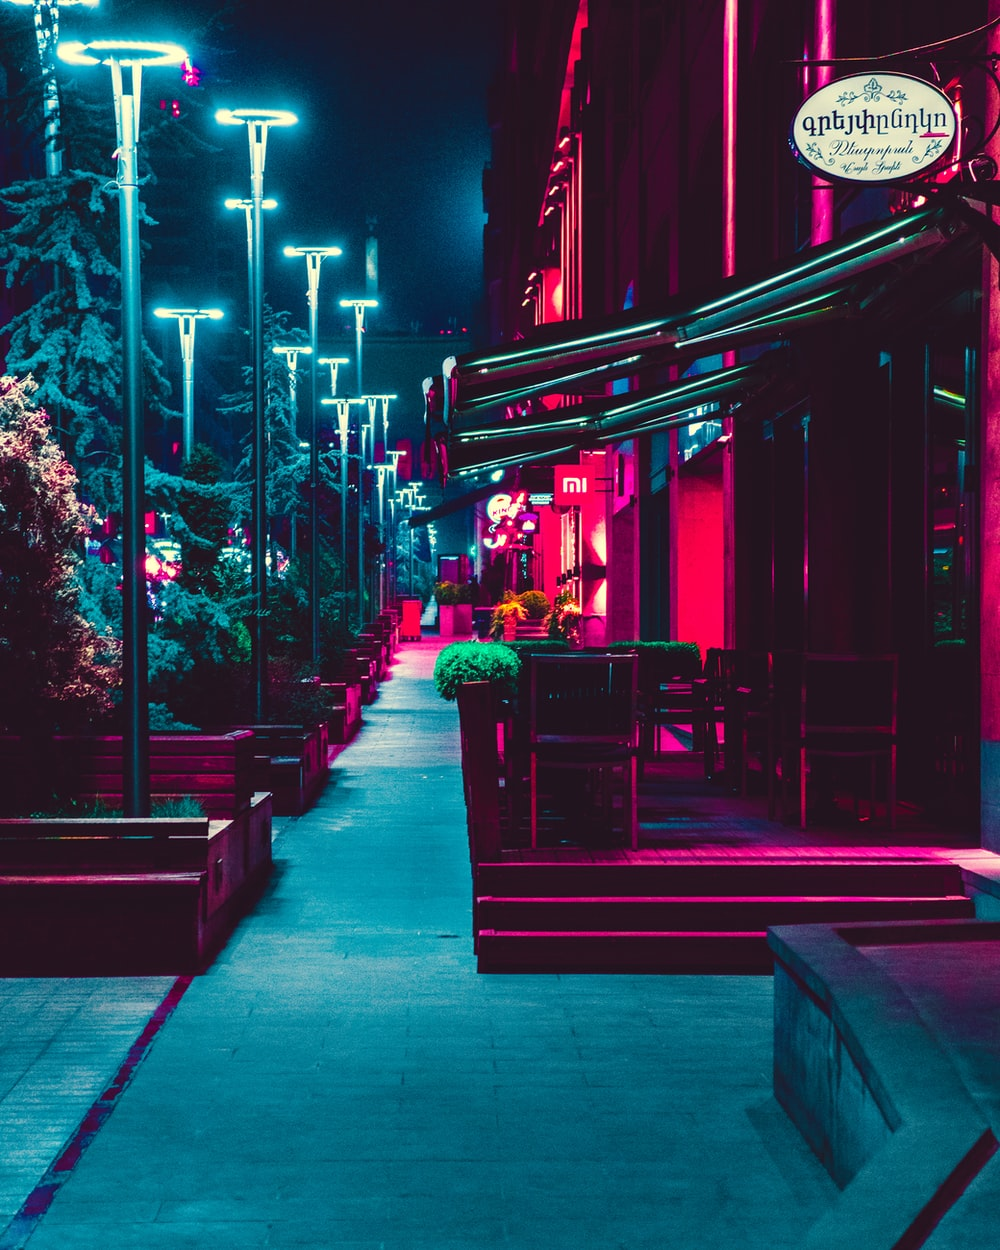 shops and lampposts during night